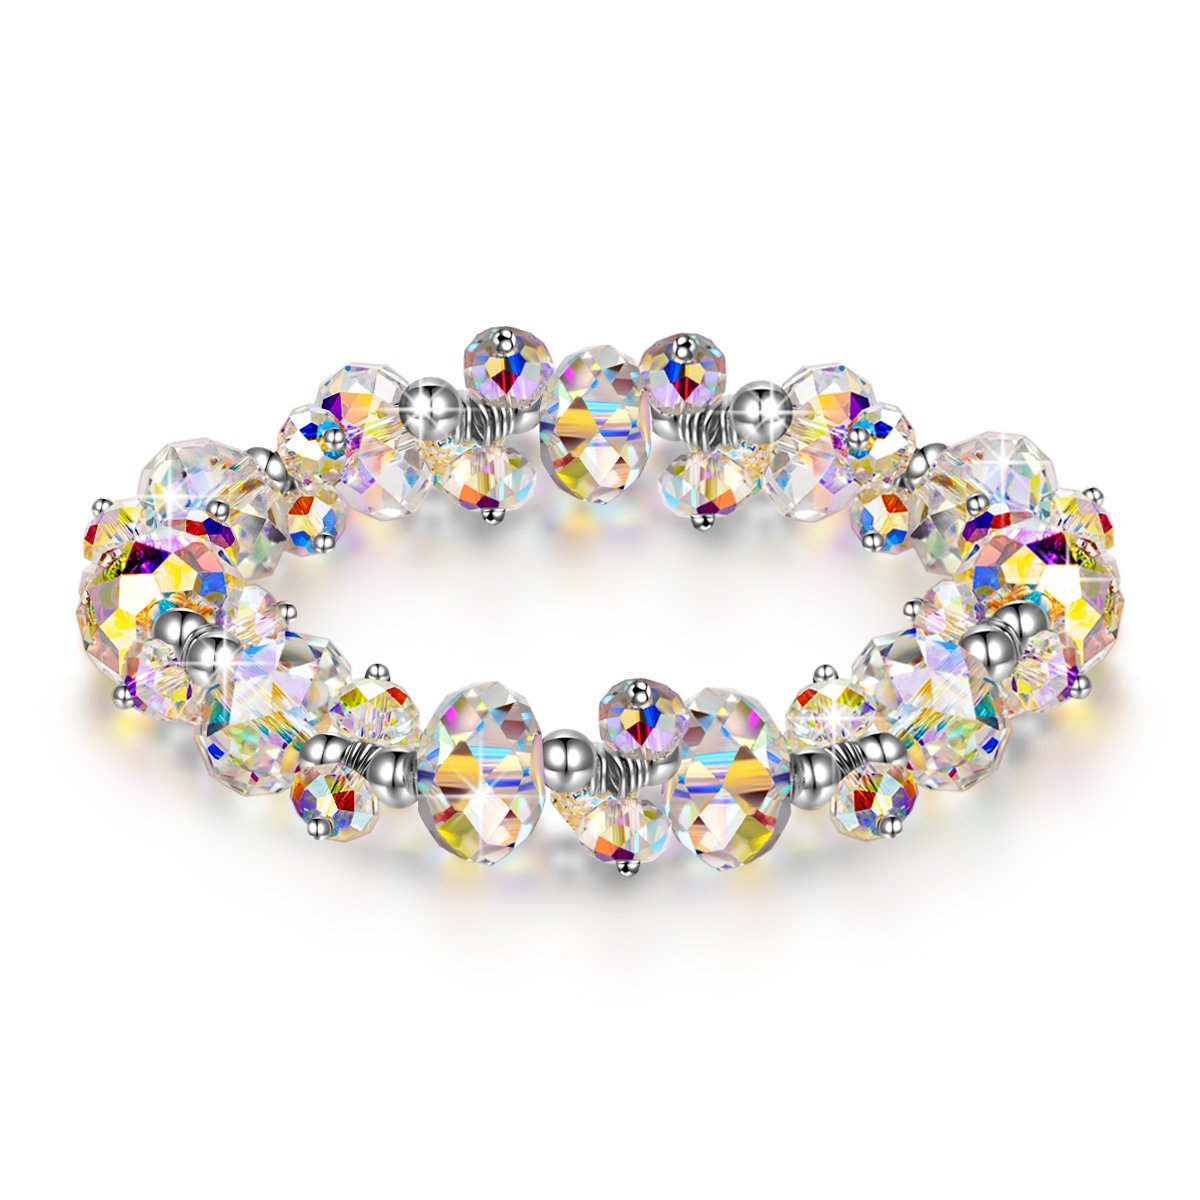 LADY COLOUR Christmas Bracelet Gift for Women Colorful Stretch Bracelet Adjustable Bangle with Swarovski Aurore Boreale Crystals Fashion Costume Jewelry Birthday Wife Her Girls Girlfriend Mom Mother by LADY COLOUR